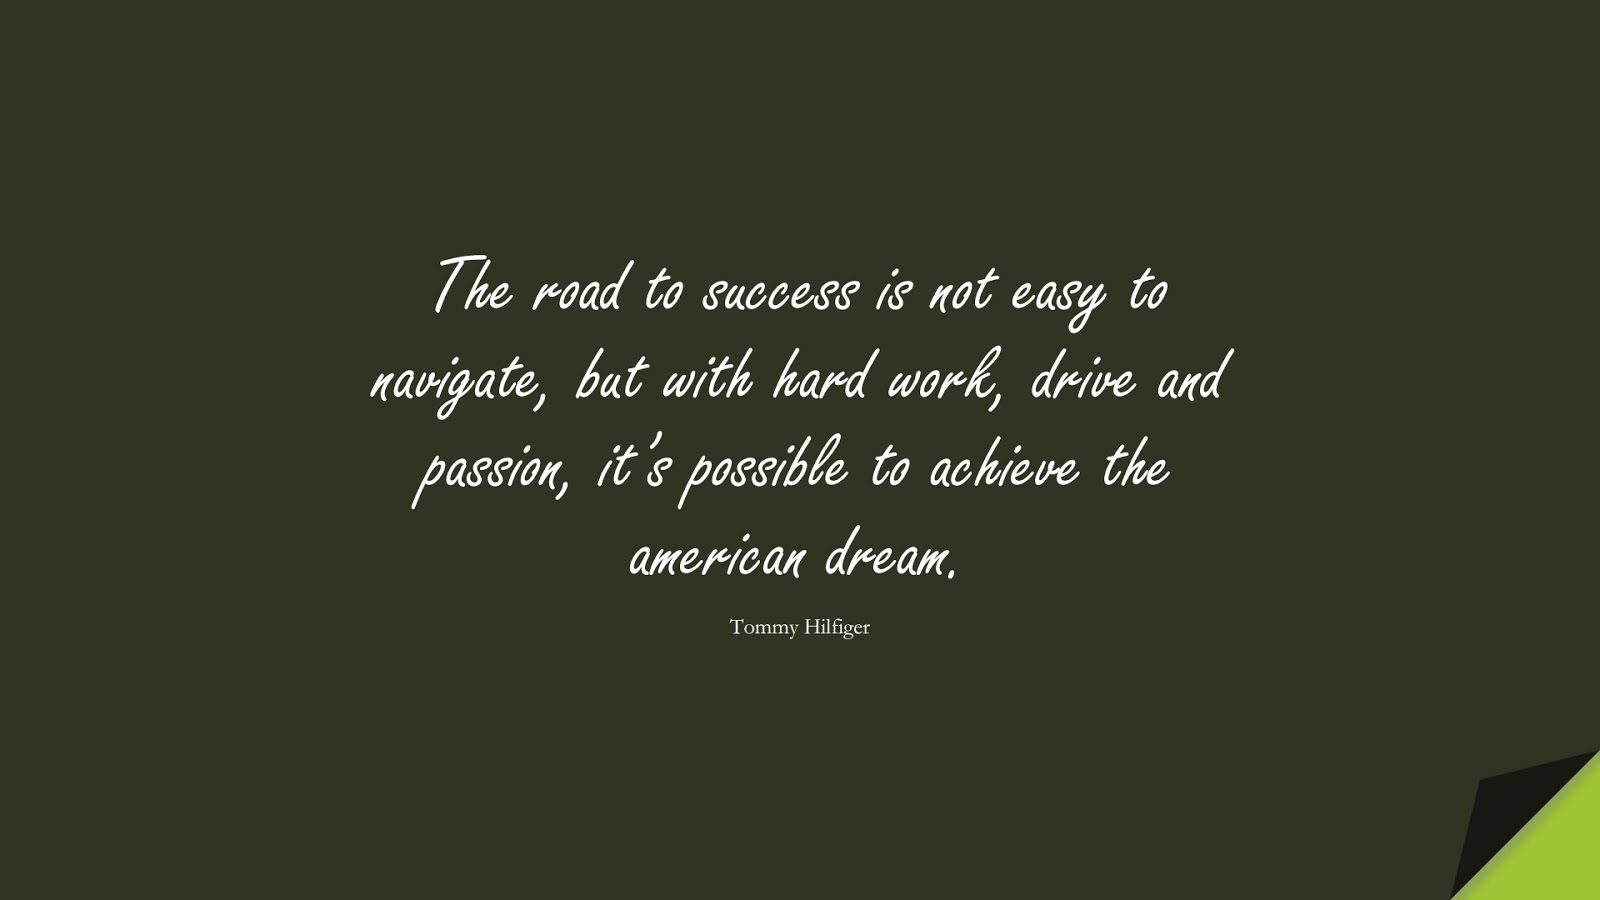 The road to success is not easy to navigate, but with hard work, drive and passion, it's possible to achieve the american dream. (Tommy Hilfiger);  #FamousQuotes